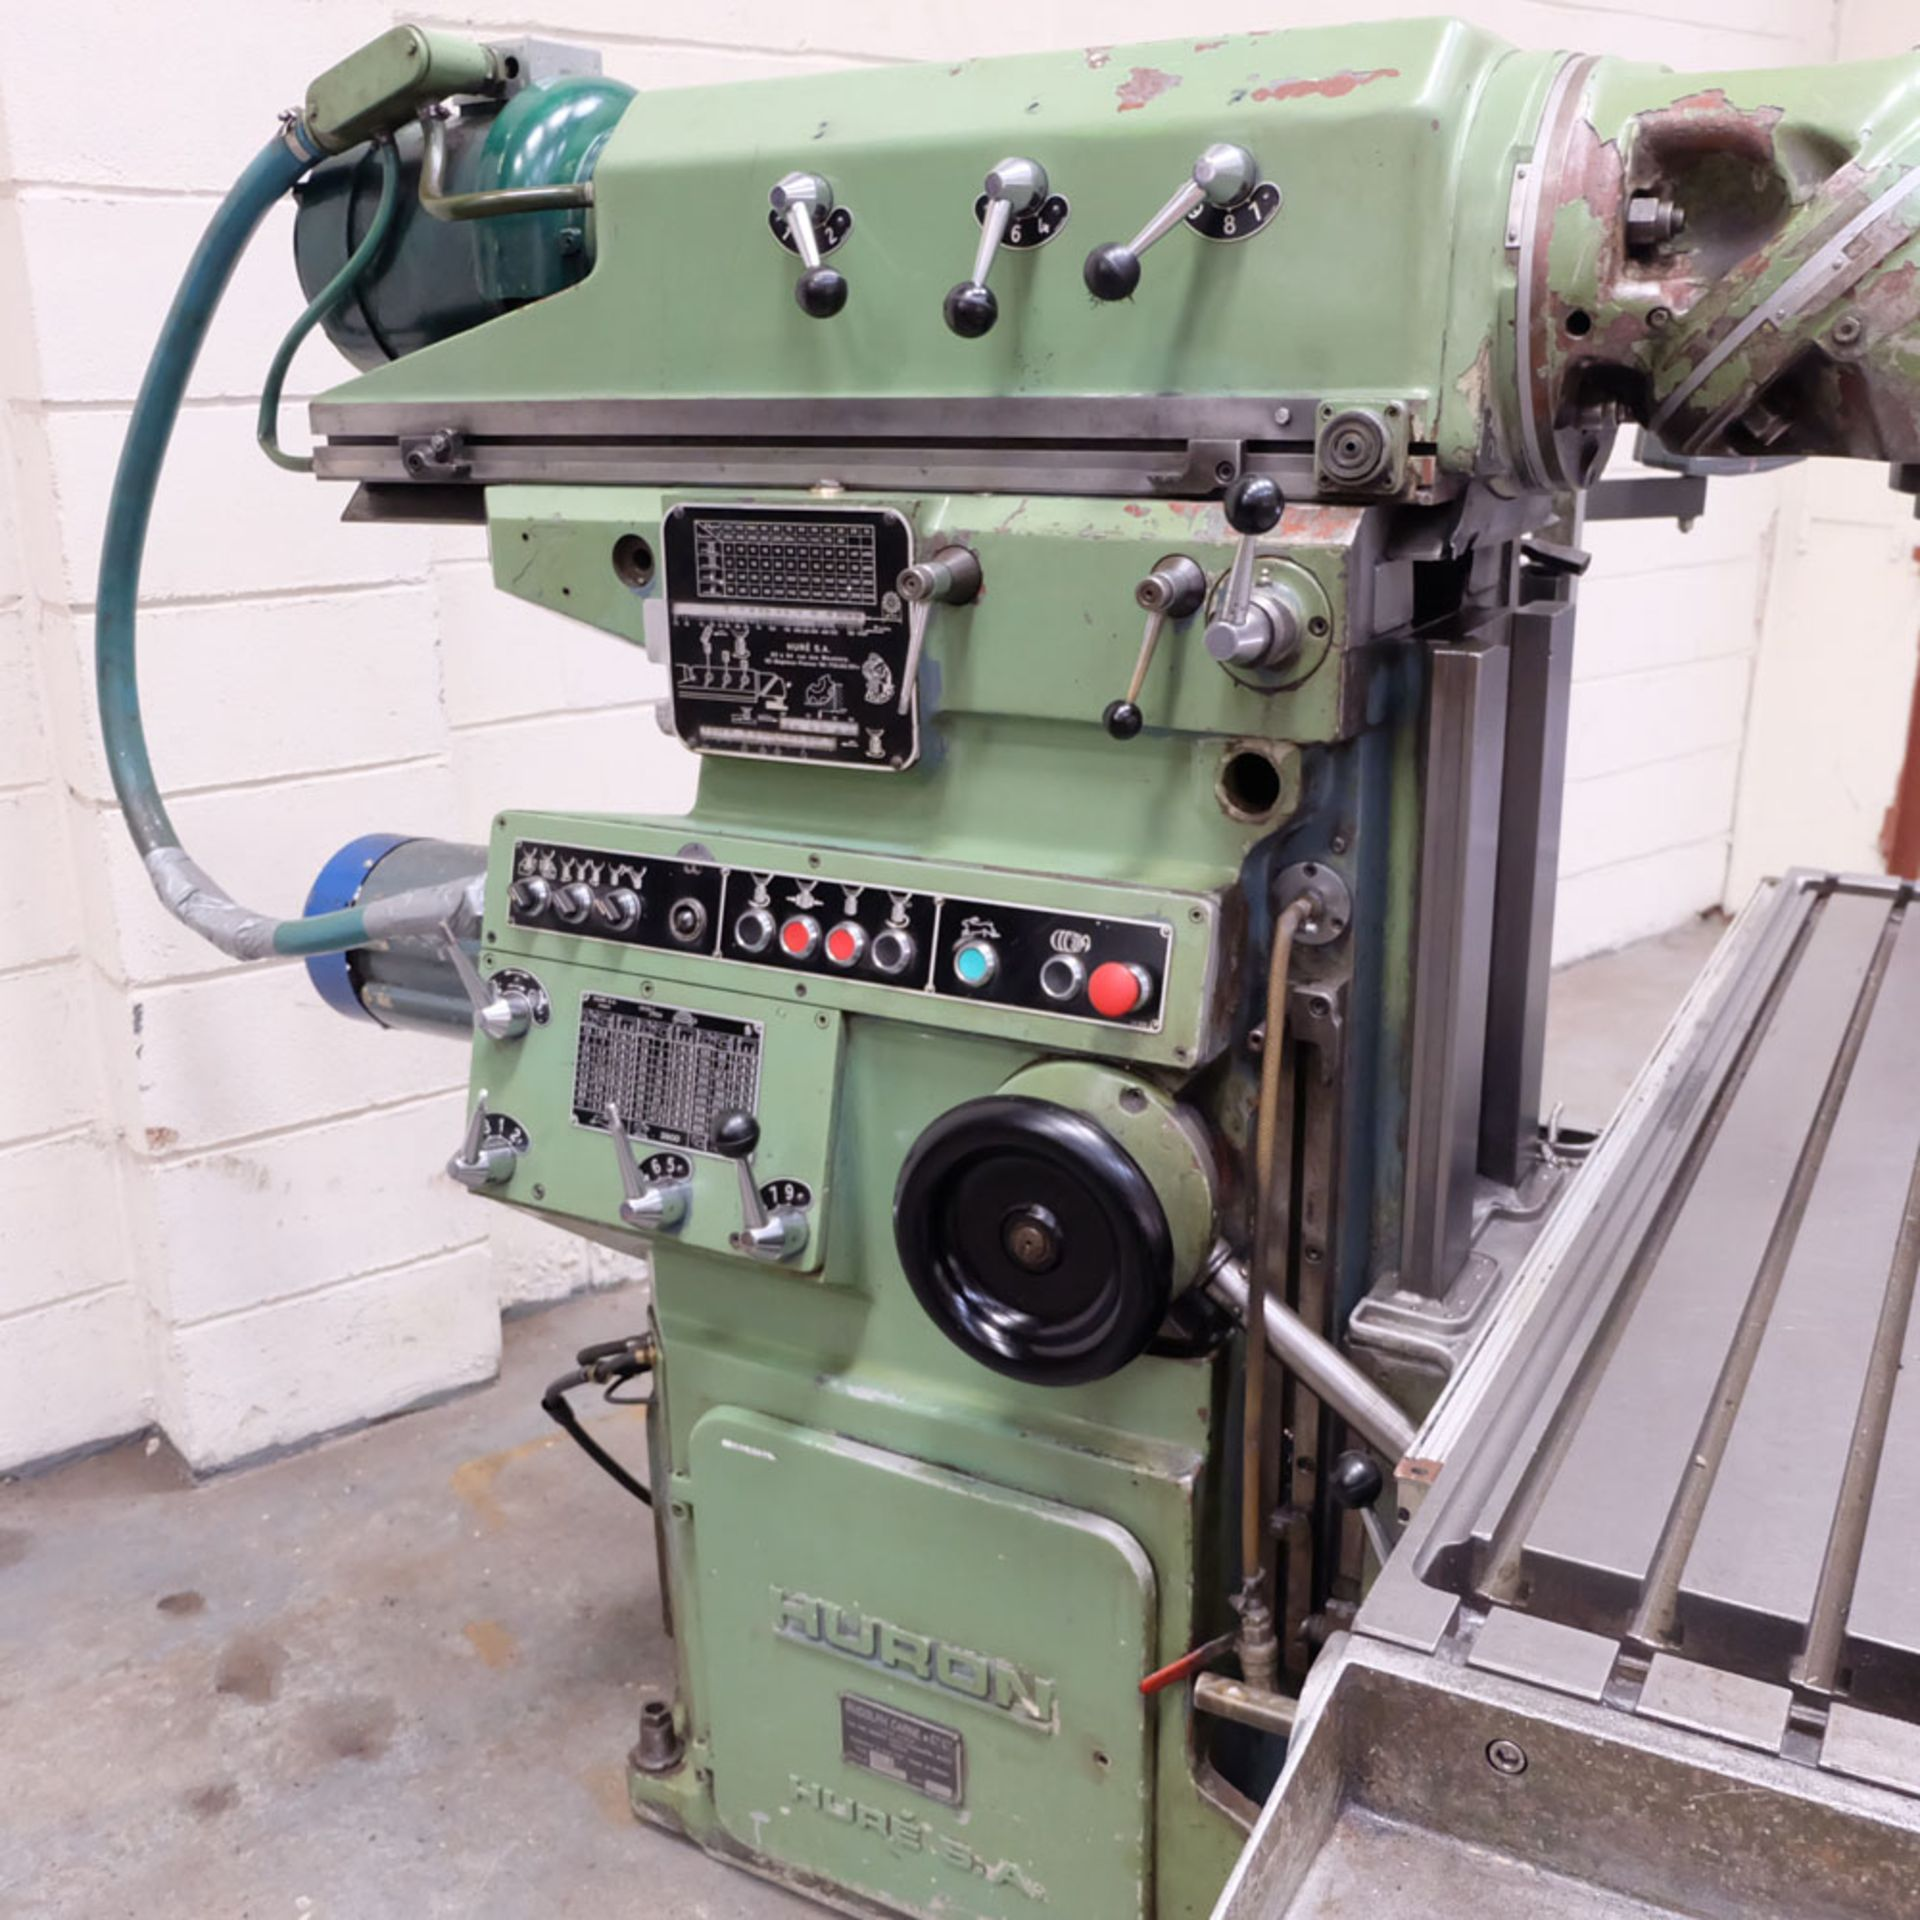 Huron NU5 Toolroom Universal Milling Machine. Table Size: 1635mm x 460mm. Taper: 50 ISO. 3 Axis DRO. - Image 4 of 6